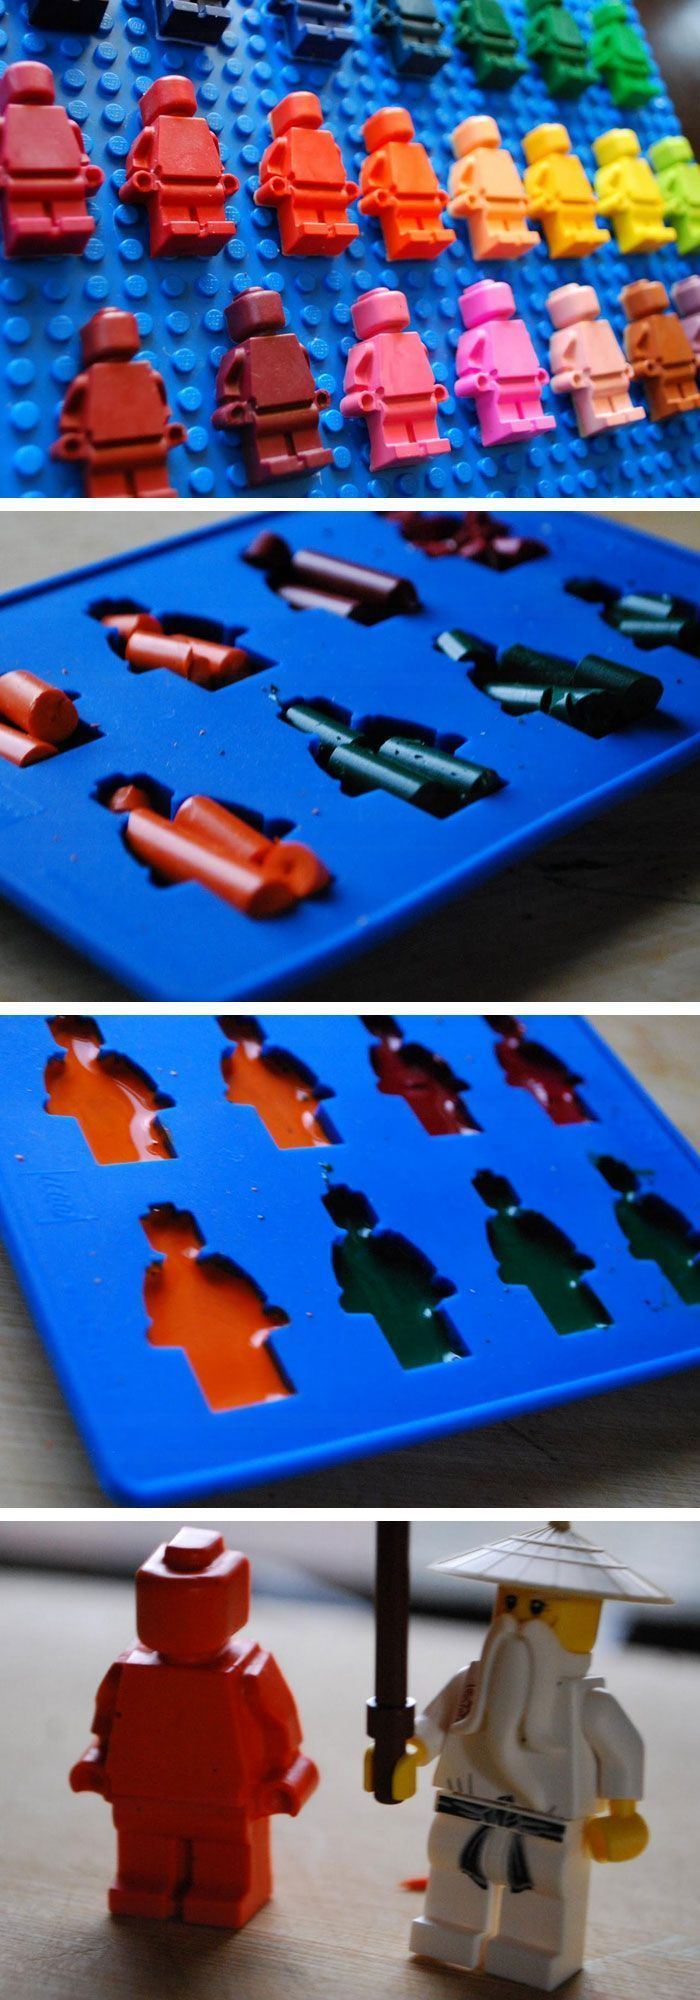 Lego Mini figure Crayons | Click Pic for 22 DIY Christmas Gifts for Kids to Make | Handmade Christmas Gifts for Boys